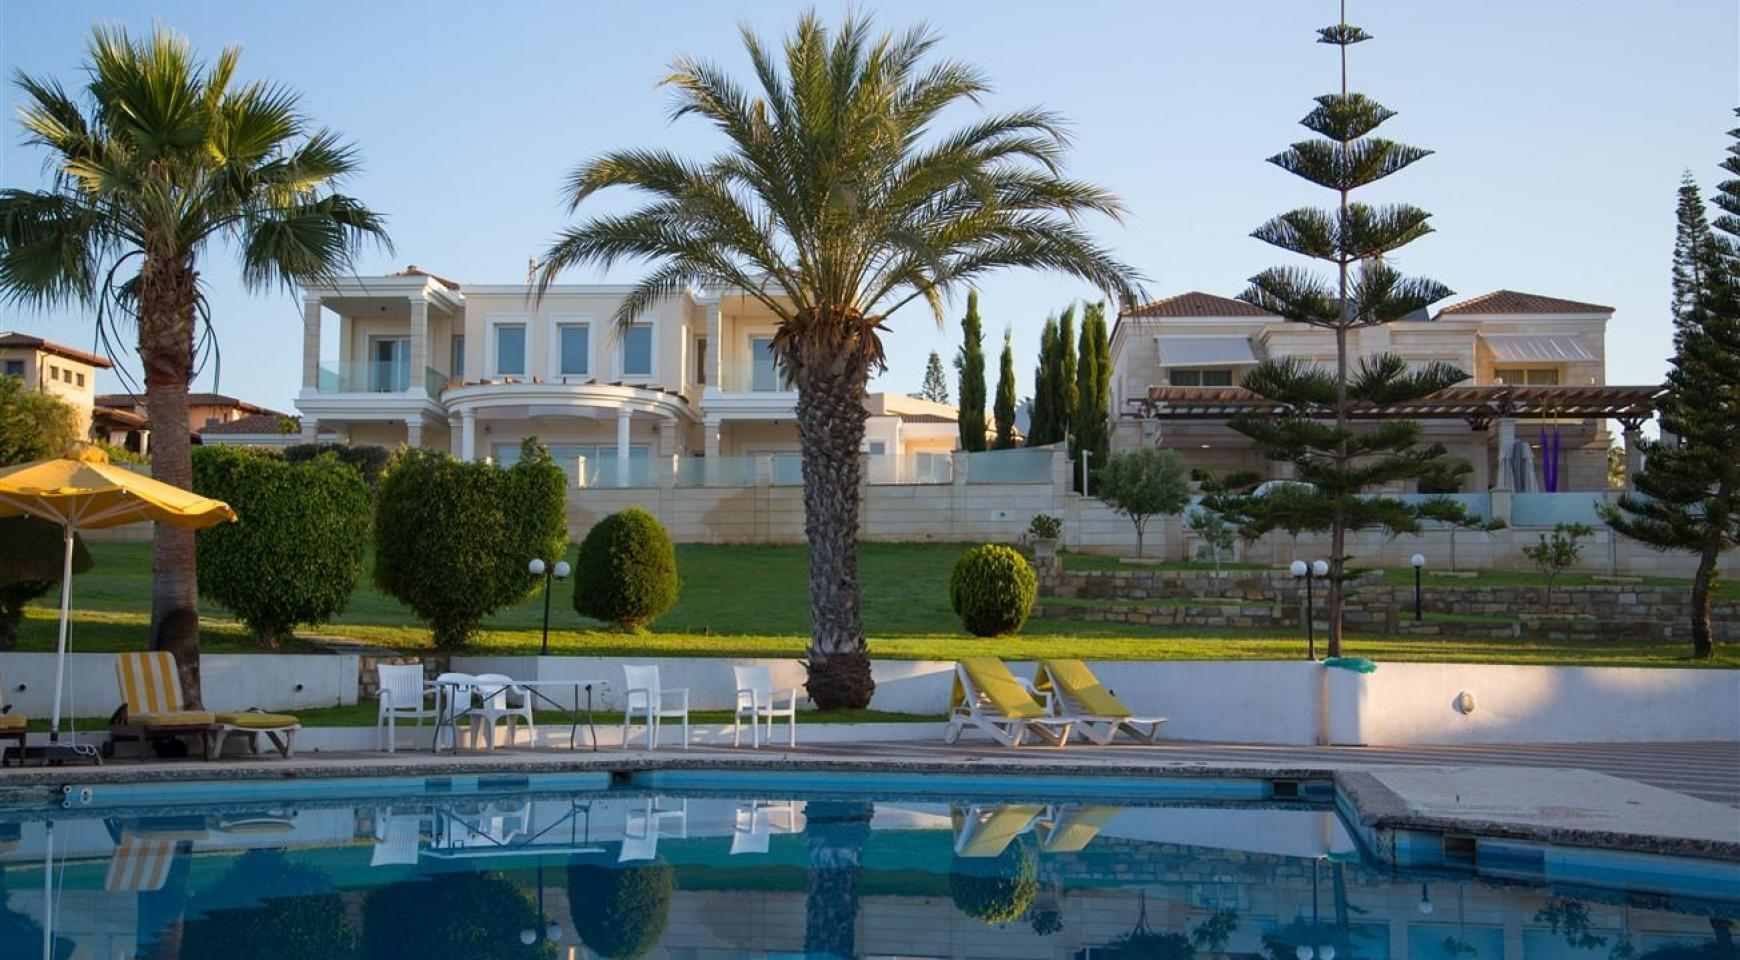 3 Bedroom Apartment in a Gated Complex by the Sea - 1